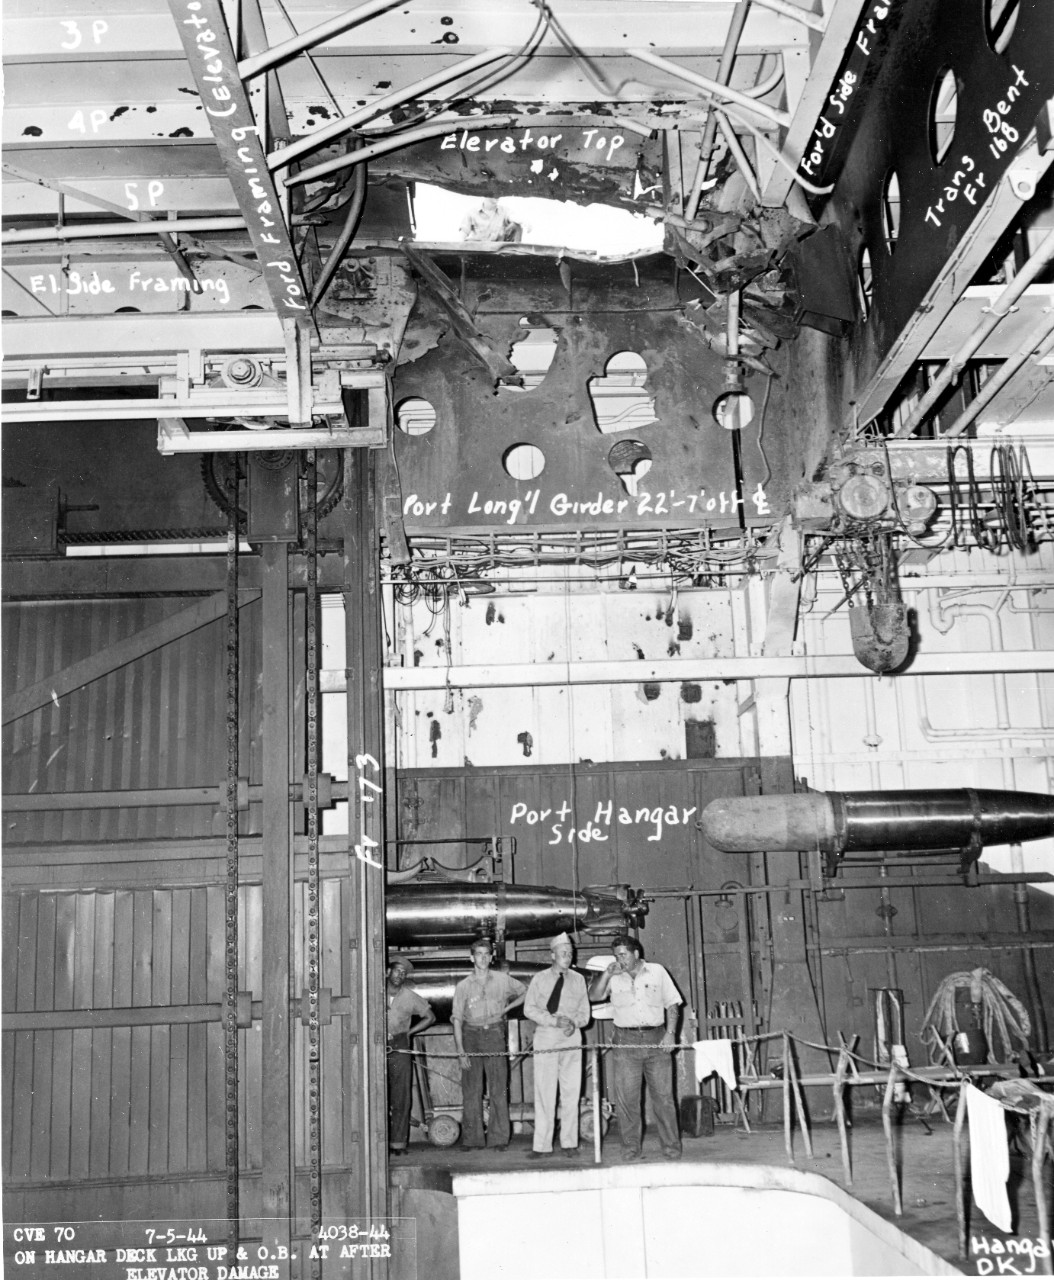 Fanshaw Bay at Pearl Harbor Navy Yard, 5 July 1944, showing a hole in the elevator (top) from a Japanese bomb. Note the size when compared to the man seen on the flight deck, and the size of the men on the hangar deck involved in inspecting the damage. Note the torpedo stowage. (U.S. Navy Bureau of Ships Photograph BS-110053, National Archives and Records Administration, Still Pictures Division, College Park, Md.)